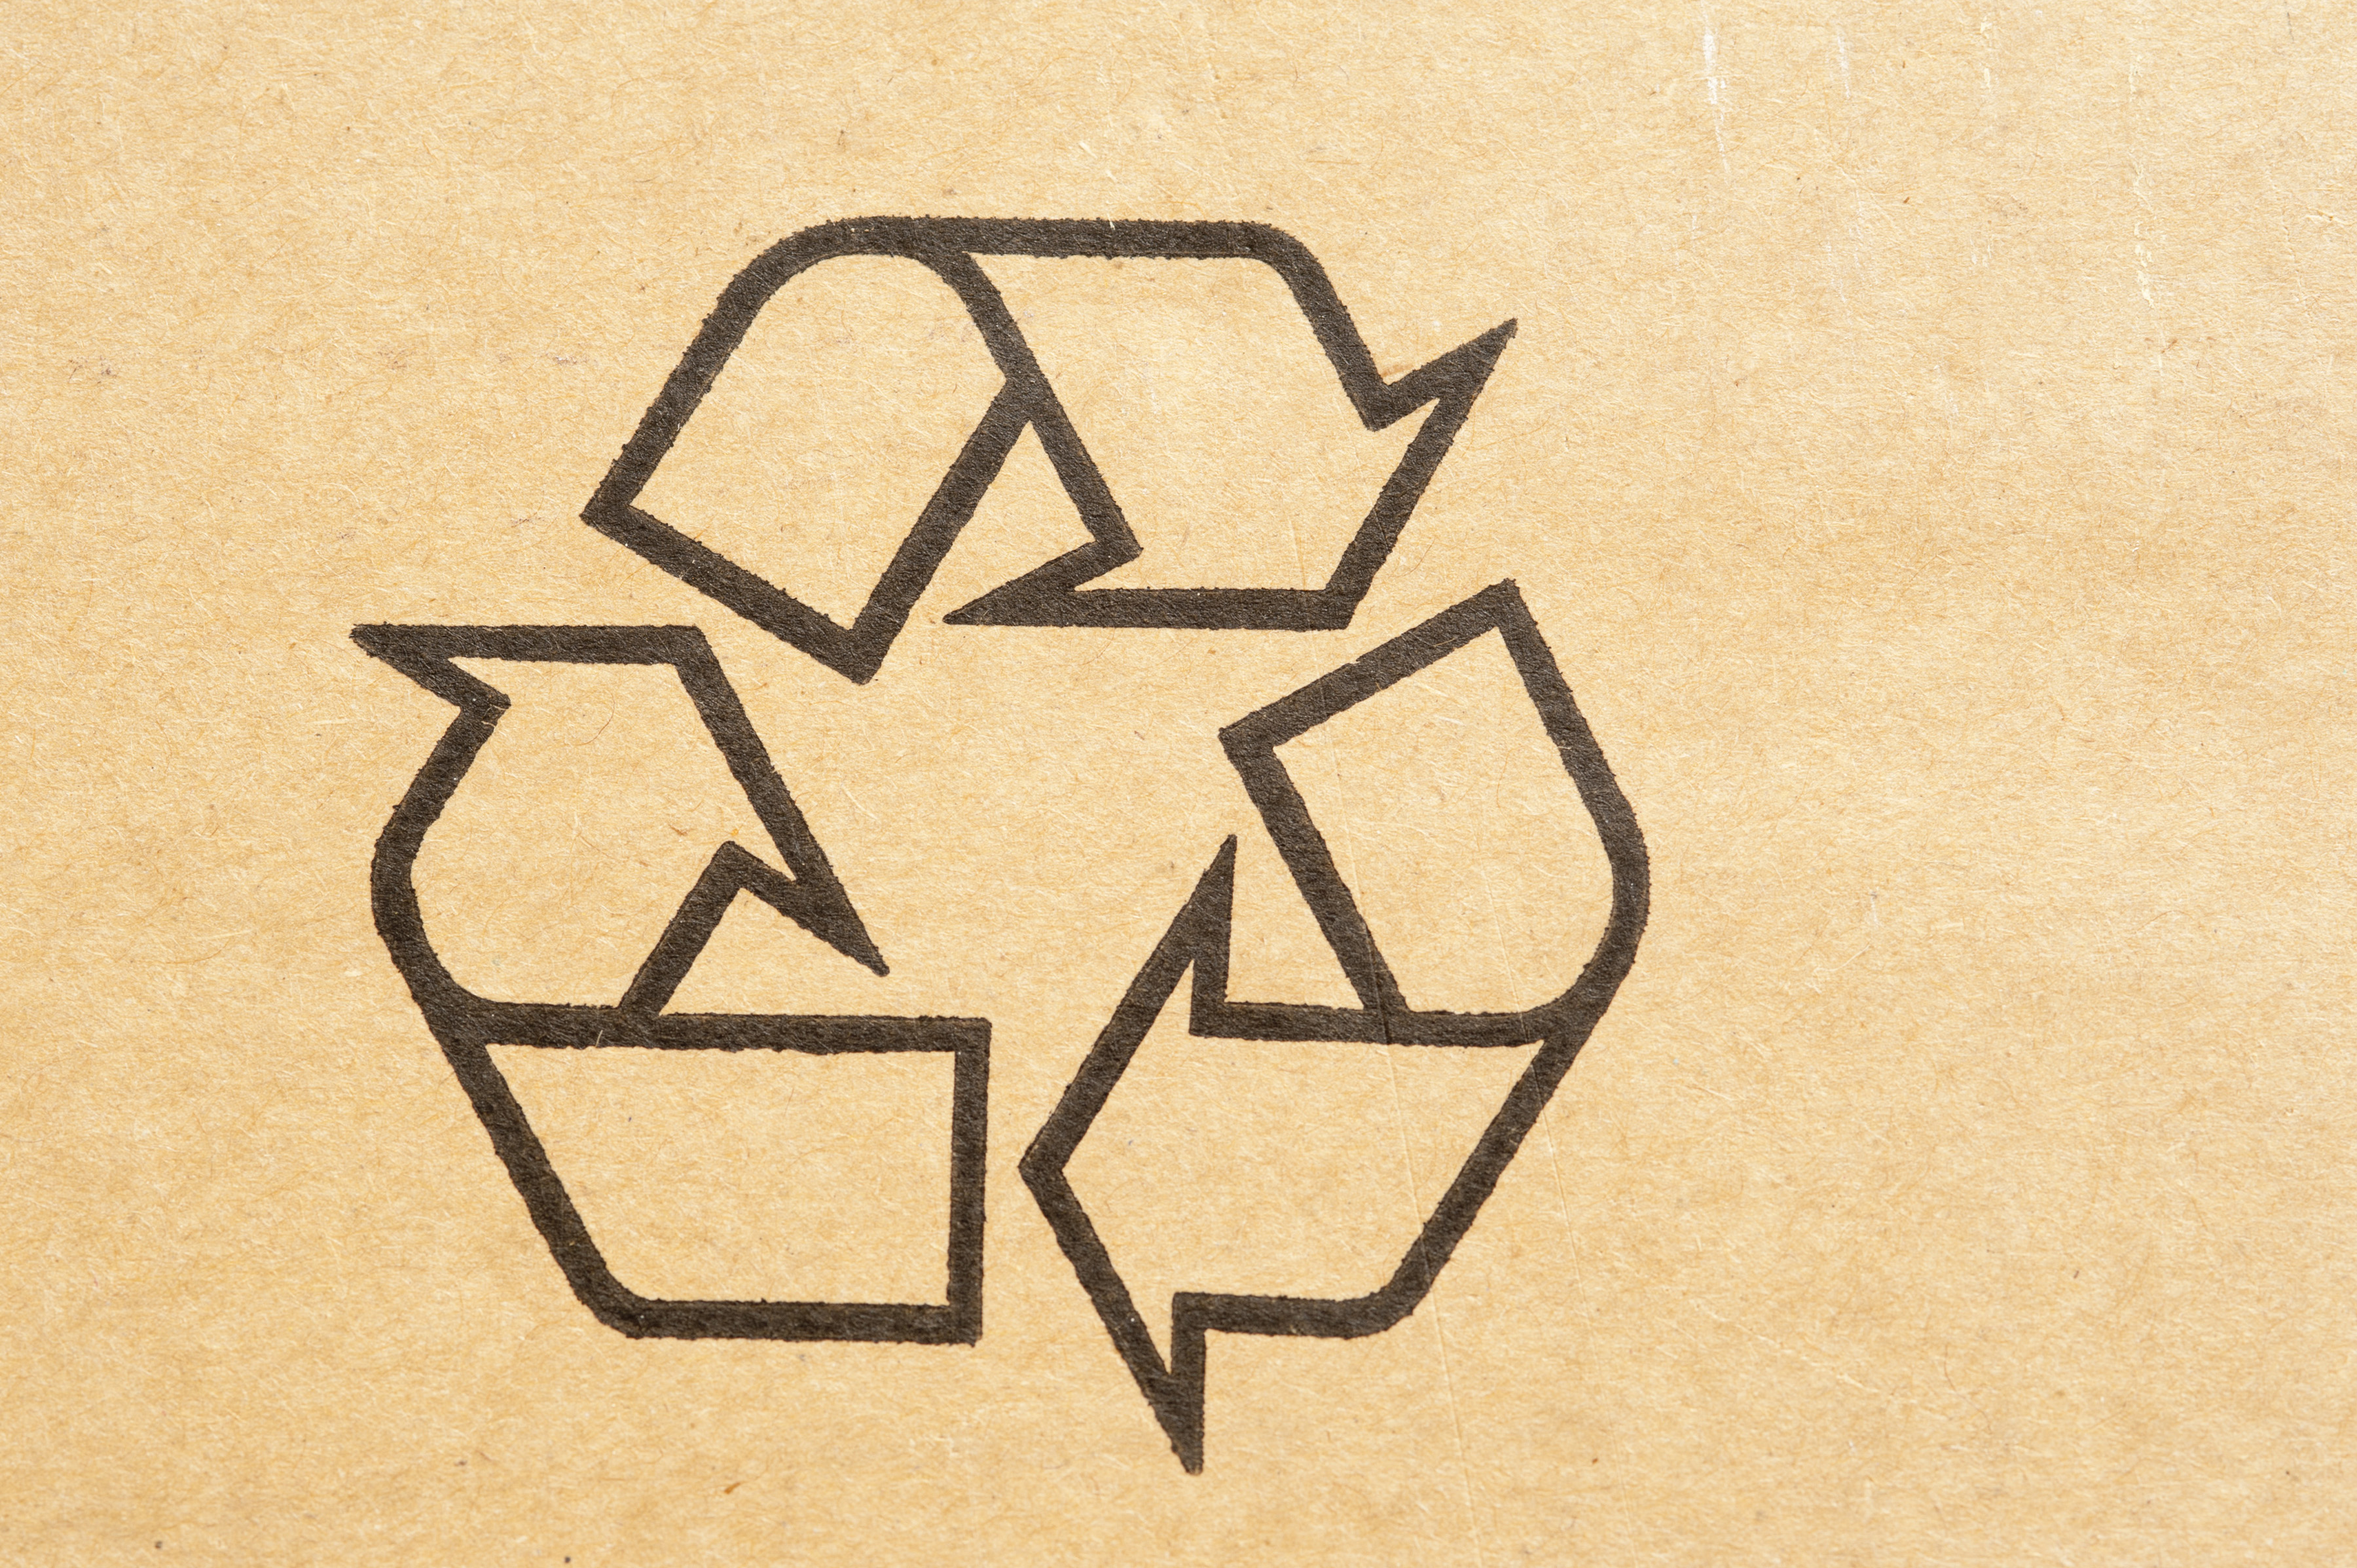 Recycle symbol stamped on a brown cardboard carton to be recycled and reused to save the environment from pollution